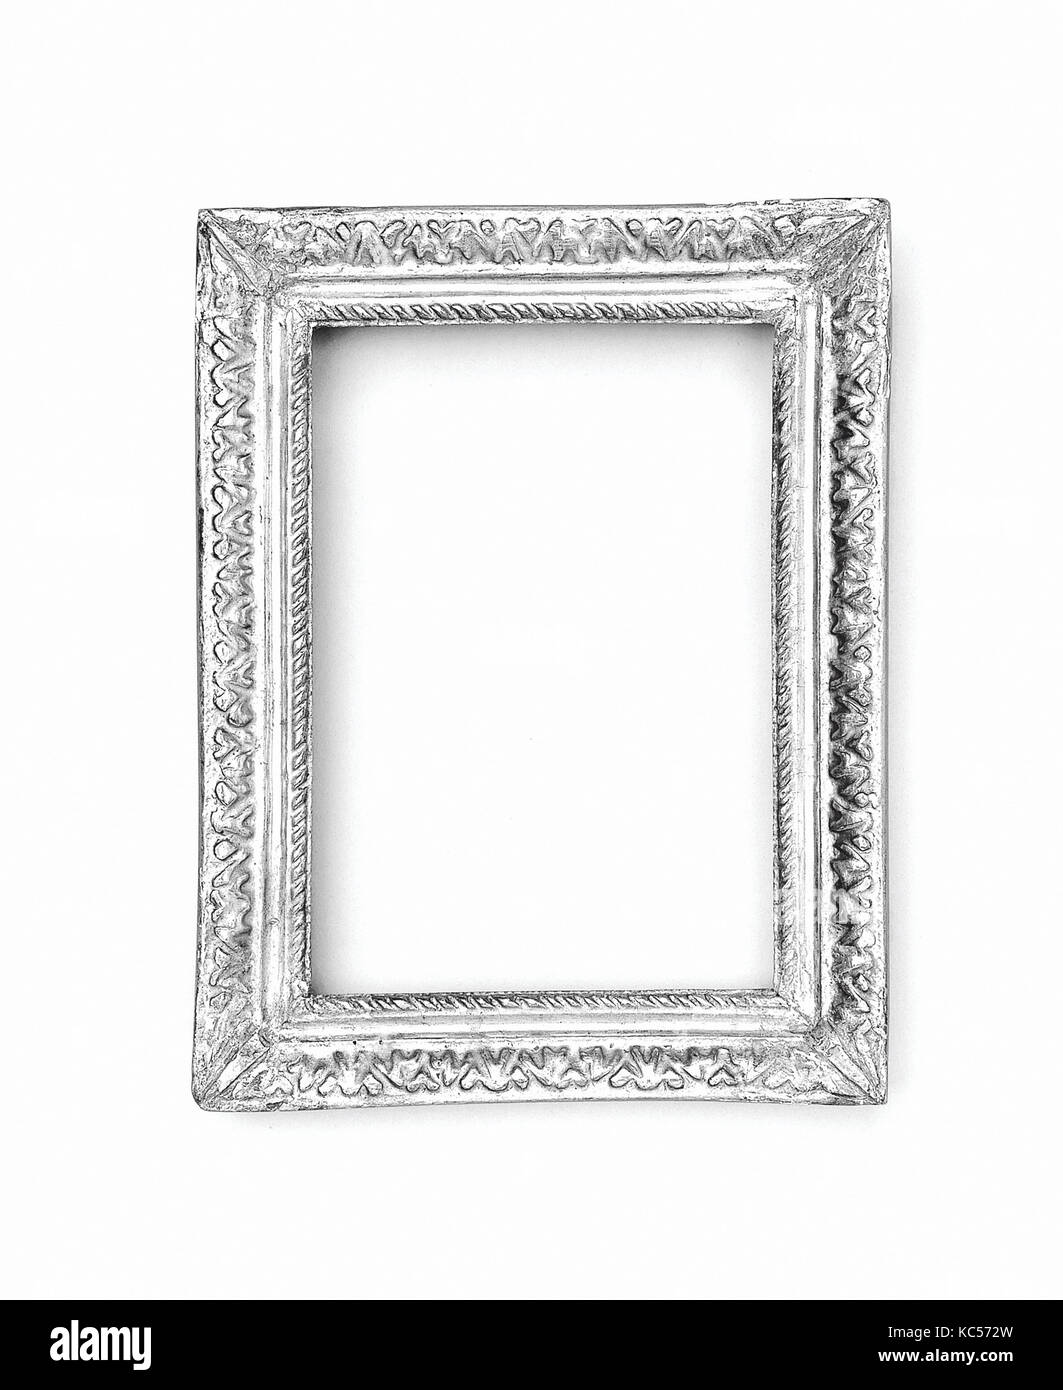 Ovolo frame, 1650–70, French, Softwood, 23.2 x 17.9, 17.2 x 12, 19 x 13.5 cm., Frames - Stock Image